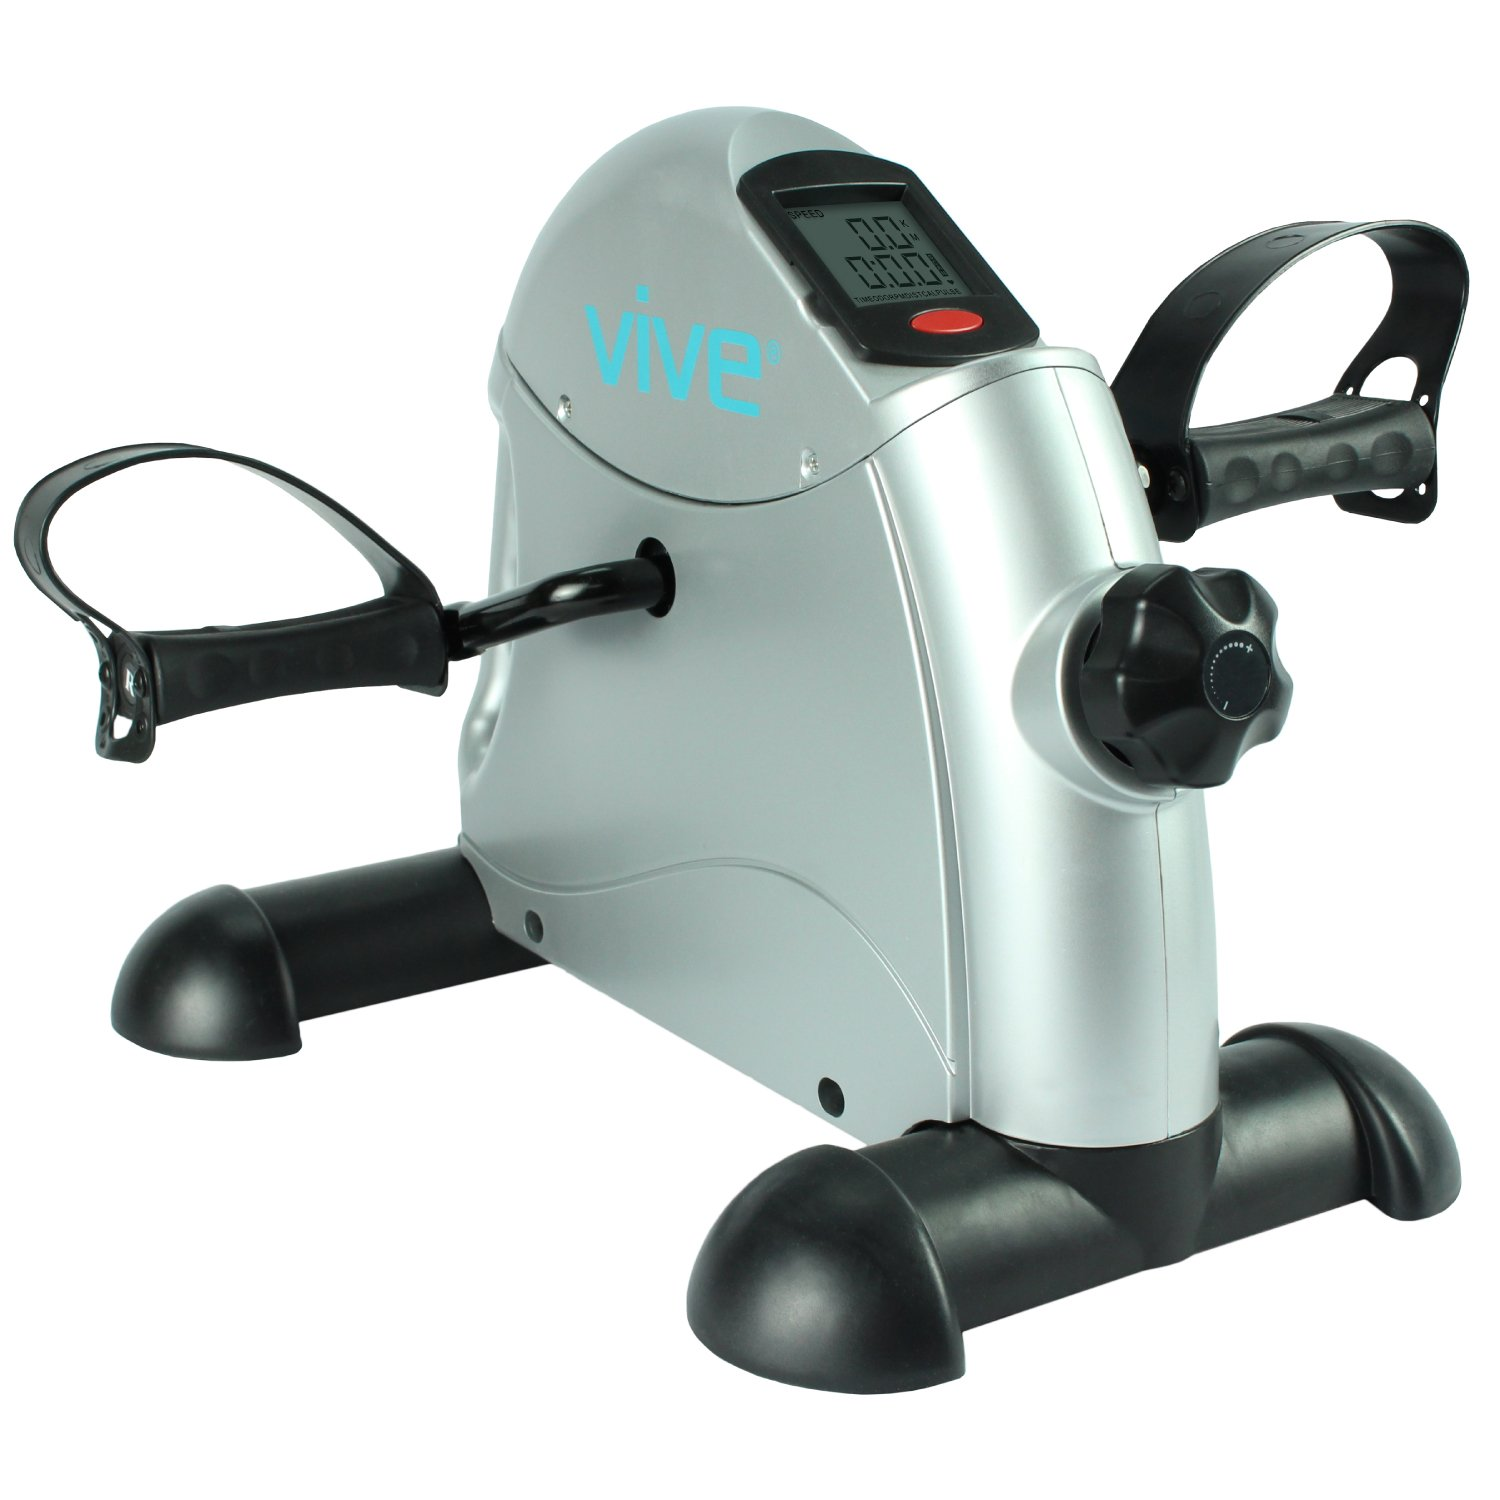 Pedal Exerciser by Vive - Portable Medical Exercise Peddler - Low Impact, Small Exercise Bike for Under Your Office Desk